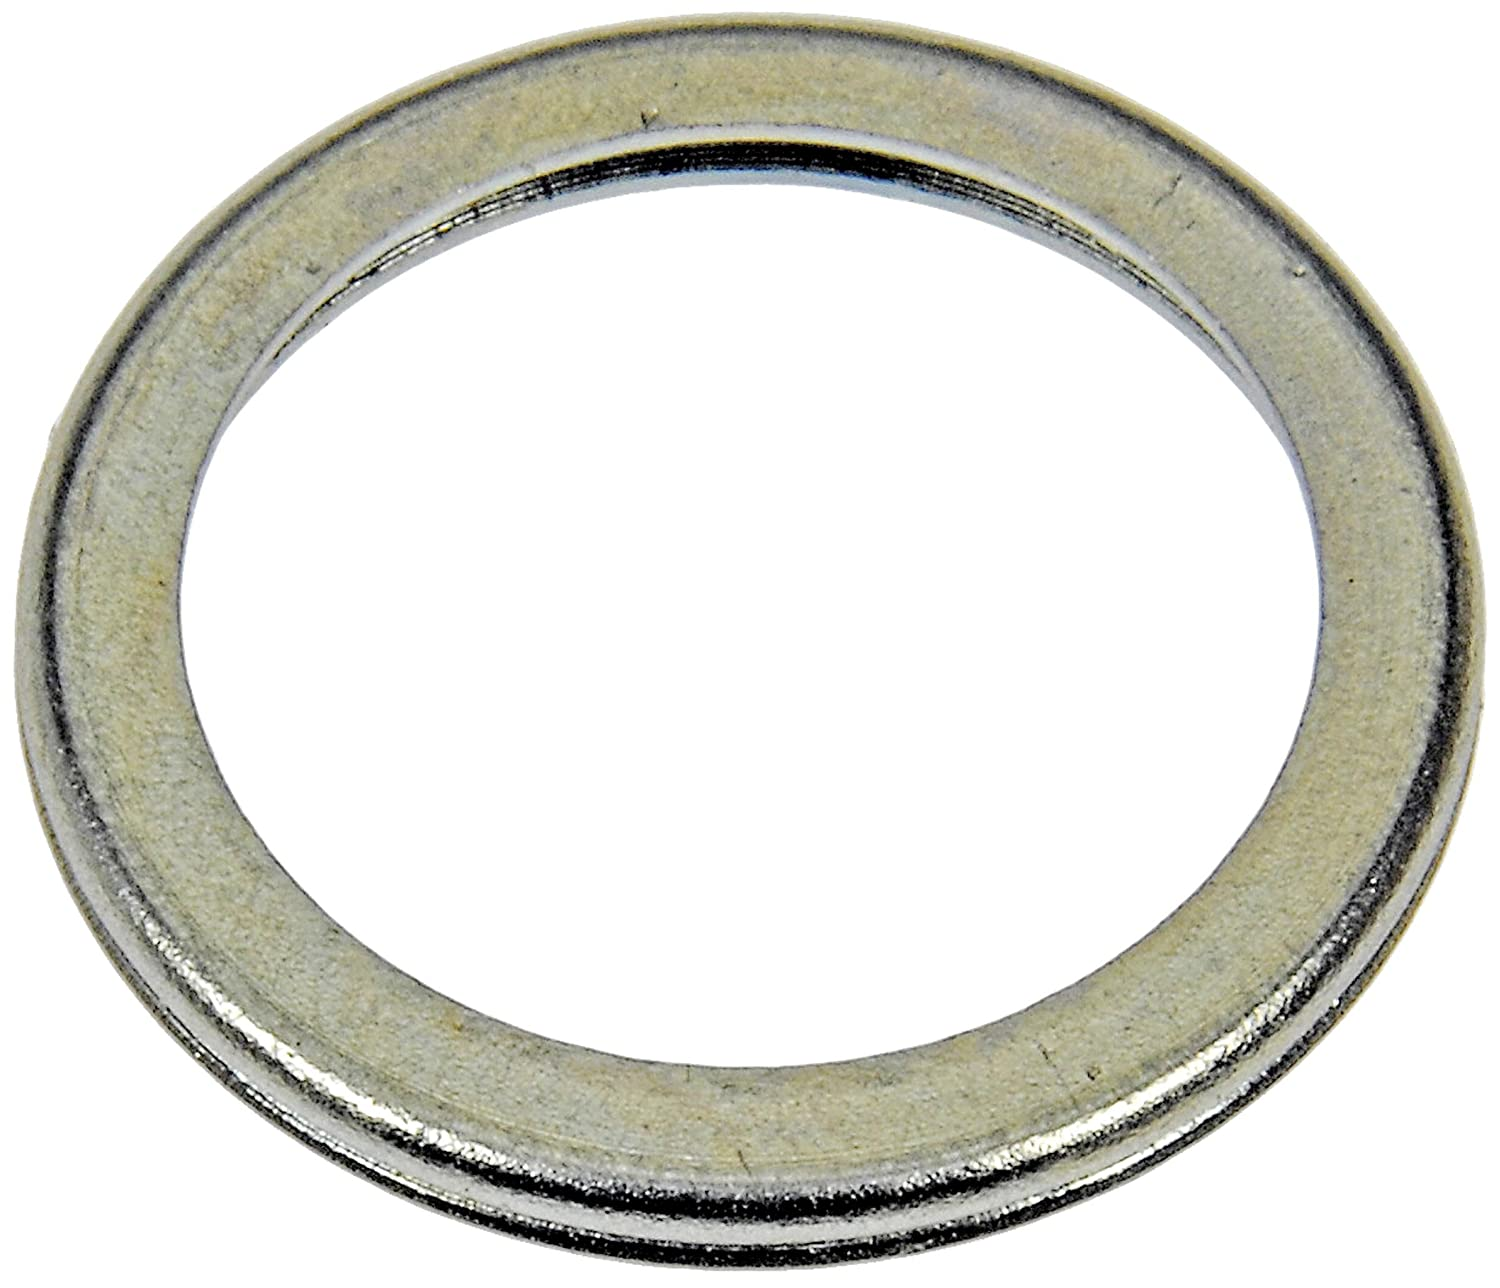 Dorman 65427 Oil Drain Plug Gasket, (Pack of 2)